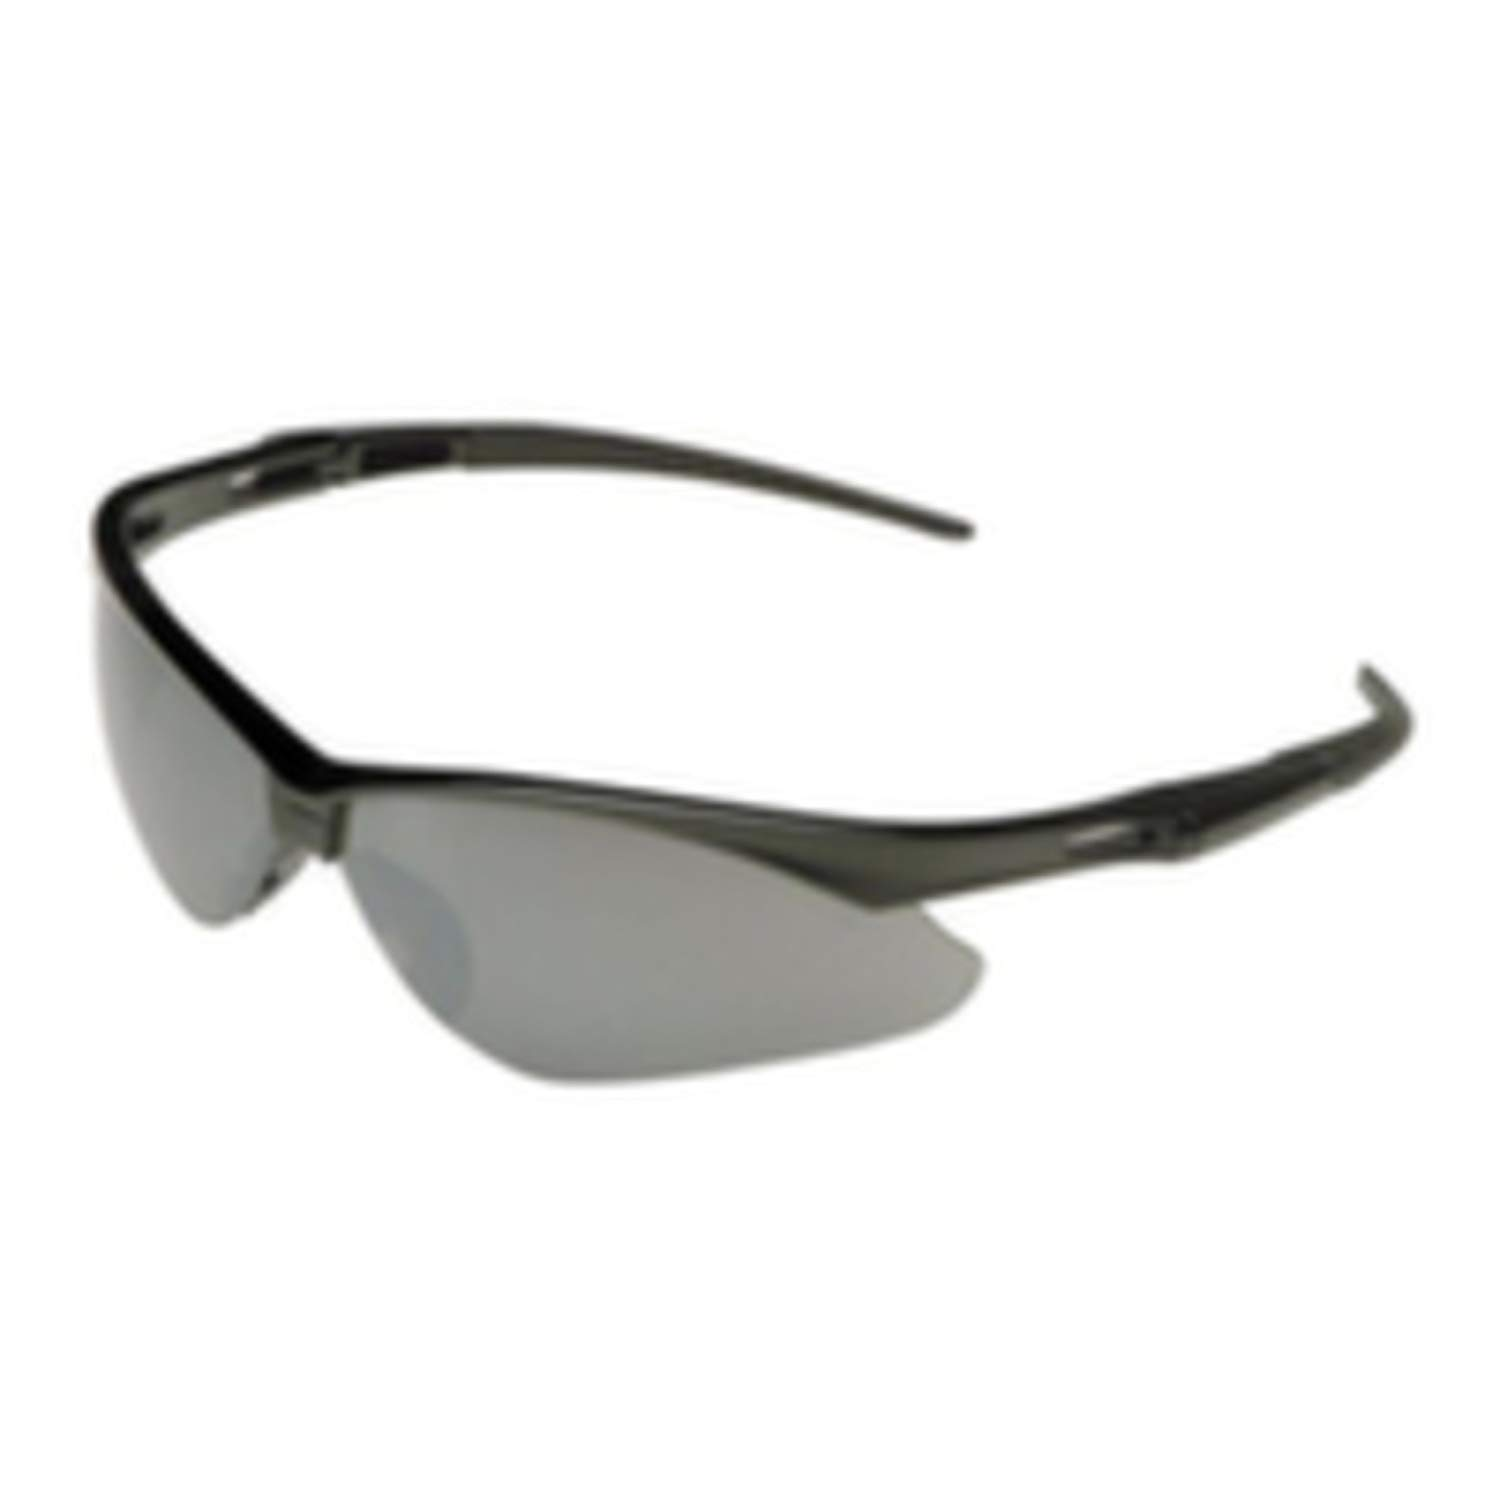 Safety Glasses - gift ideas for welders